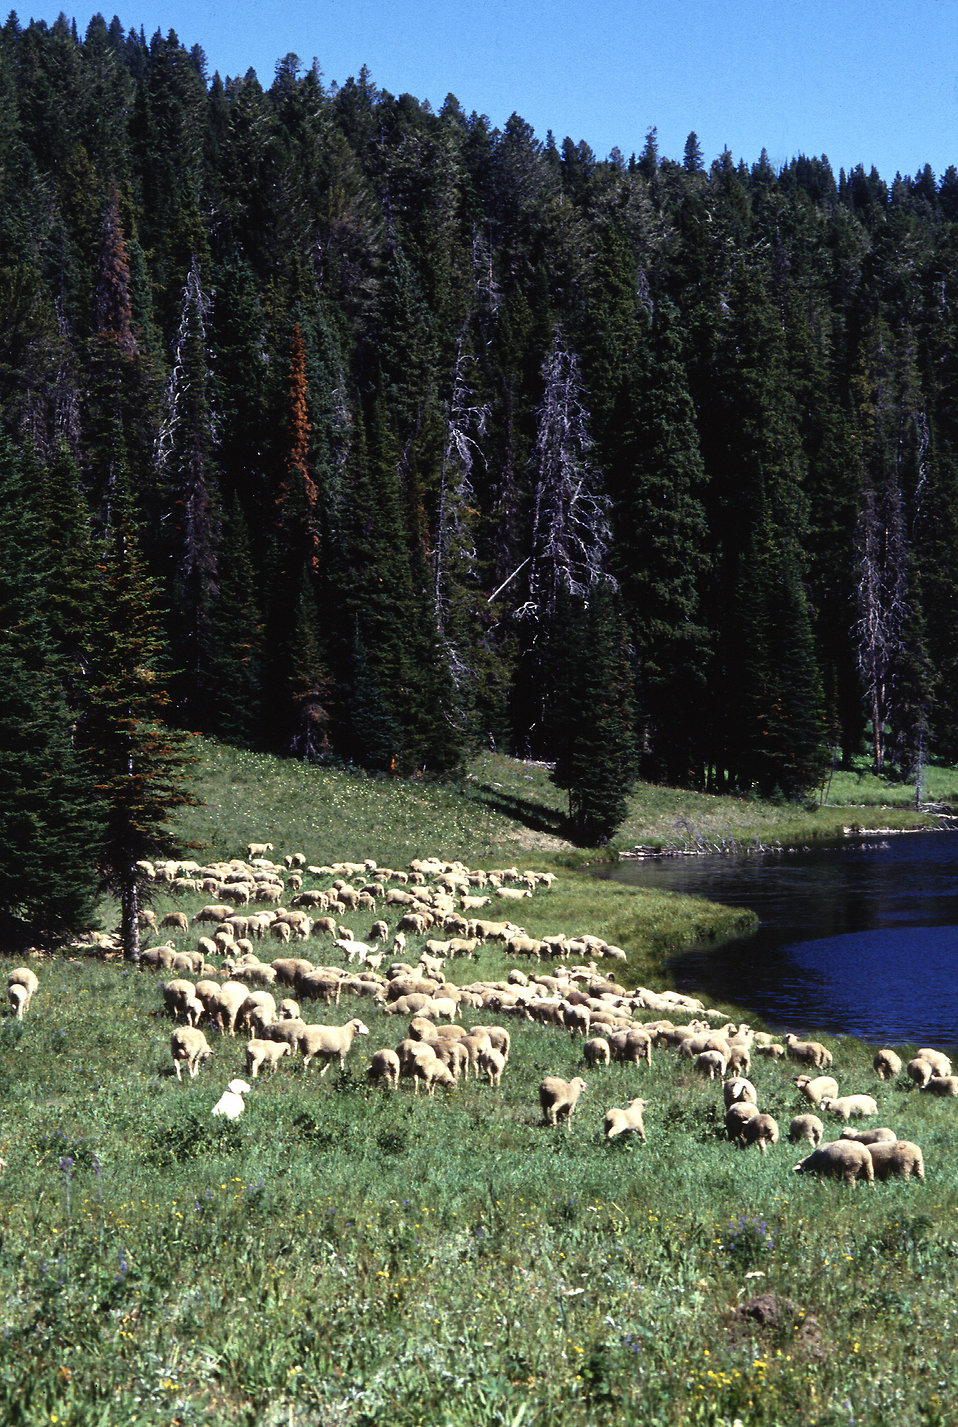 Sheep grazing by a lake : Free Stock Photo